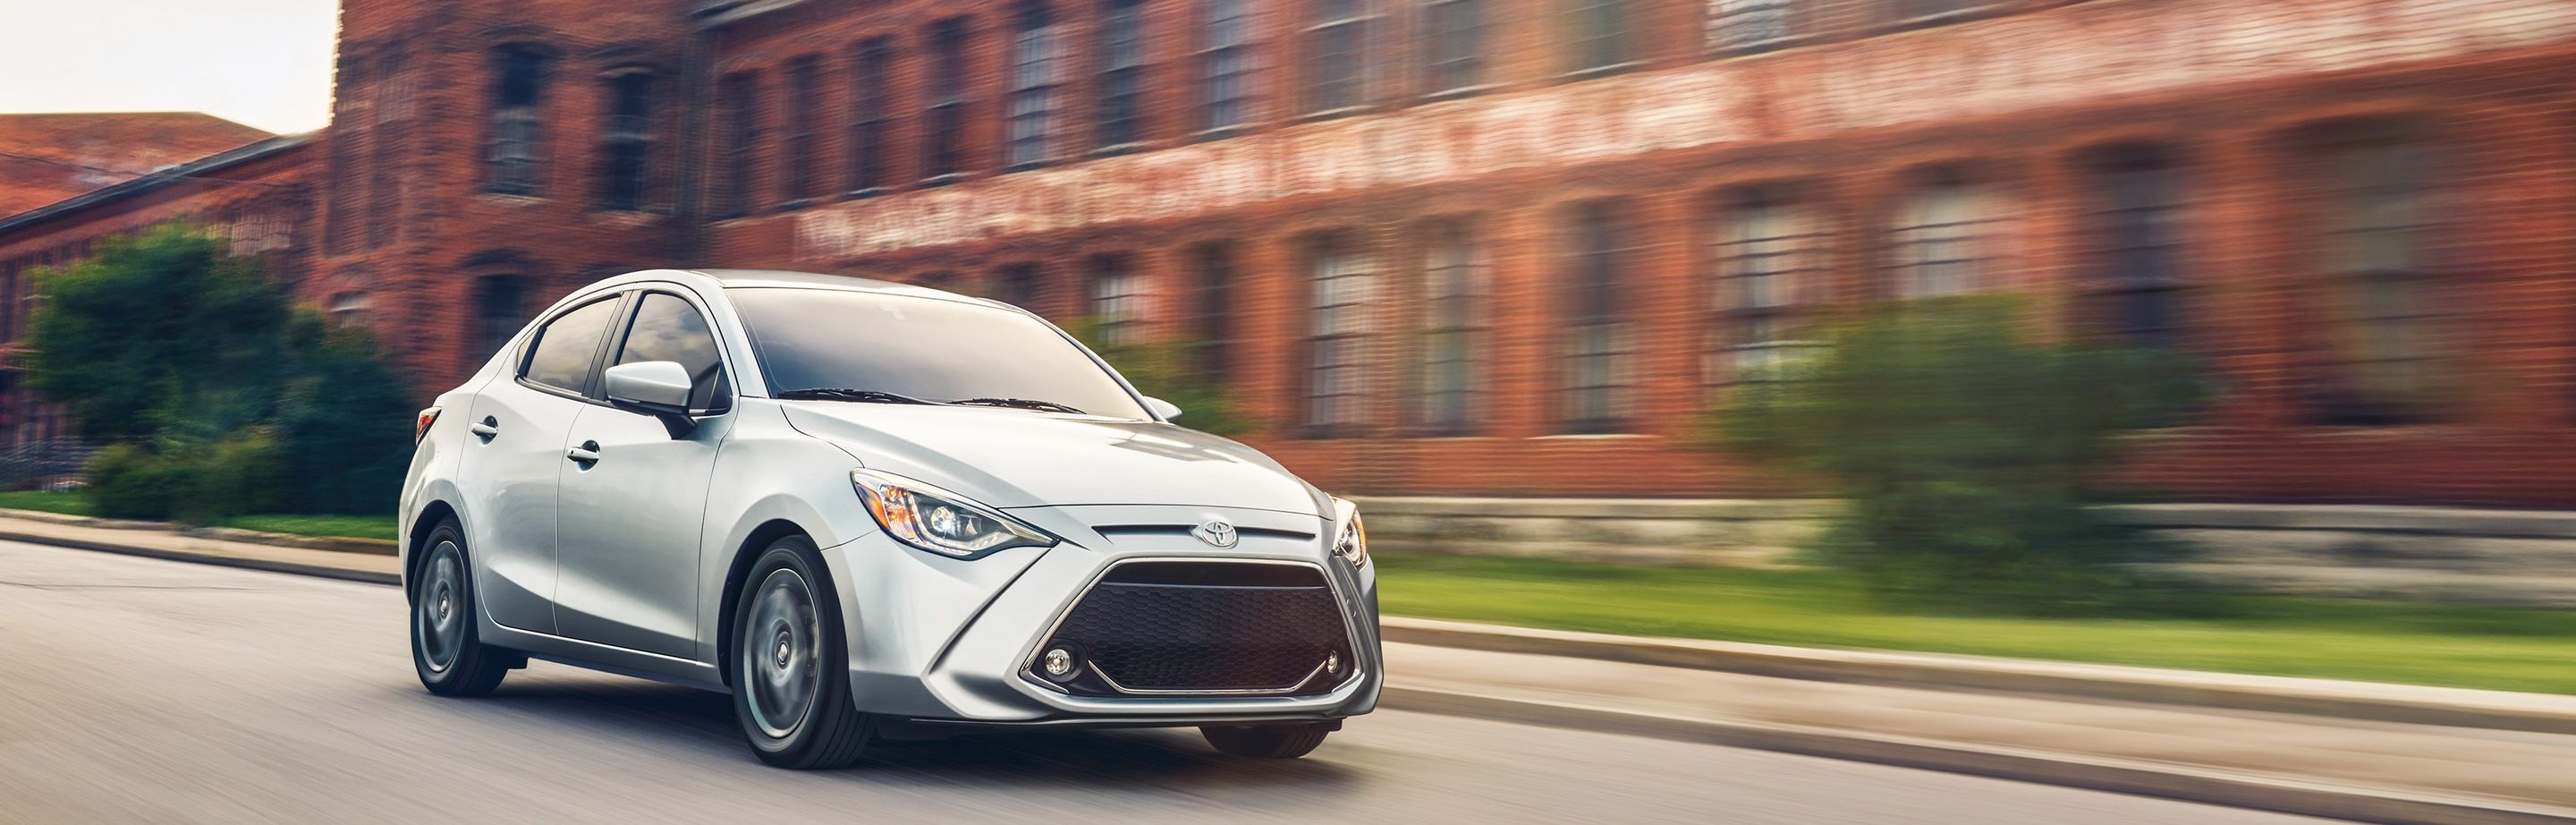 2019 Toyota Yaris for Sale near Green, OH